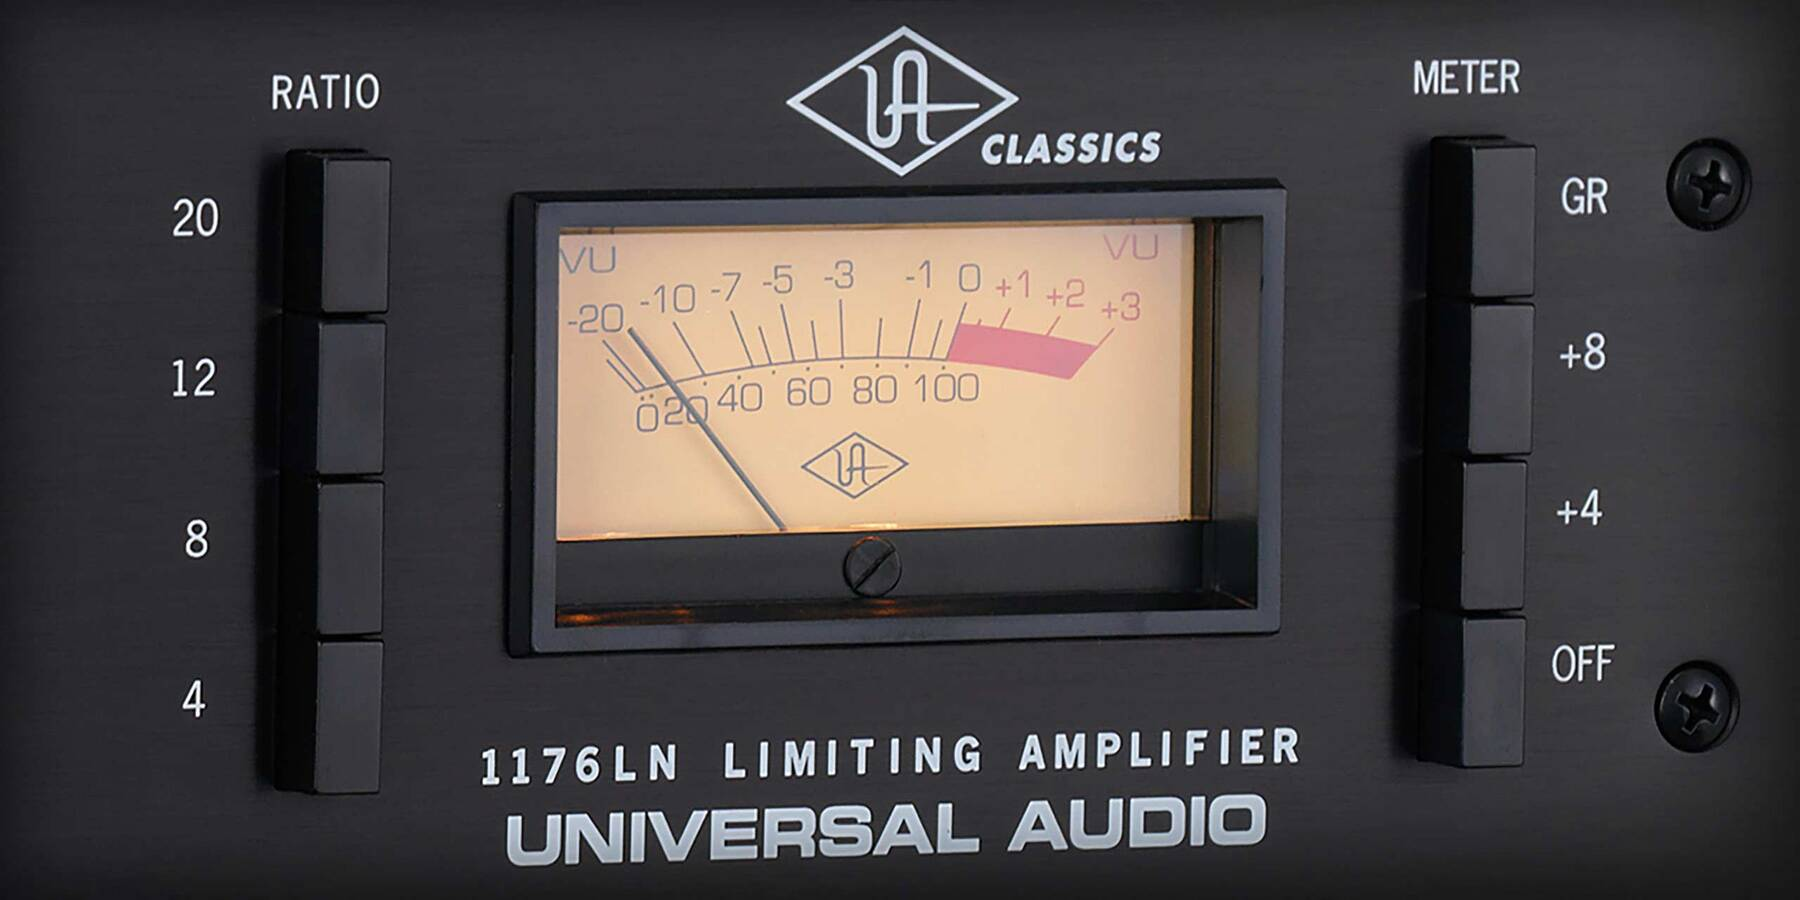 1176ln-classic-limiting-amplifier-image-4